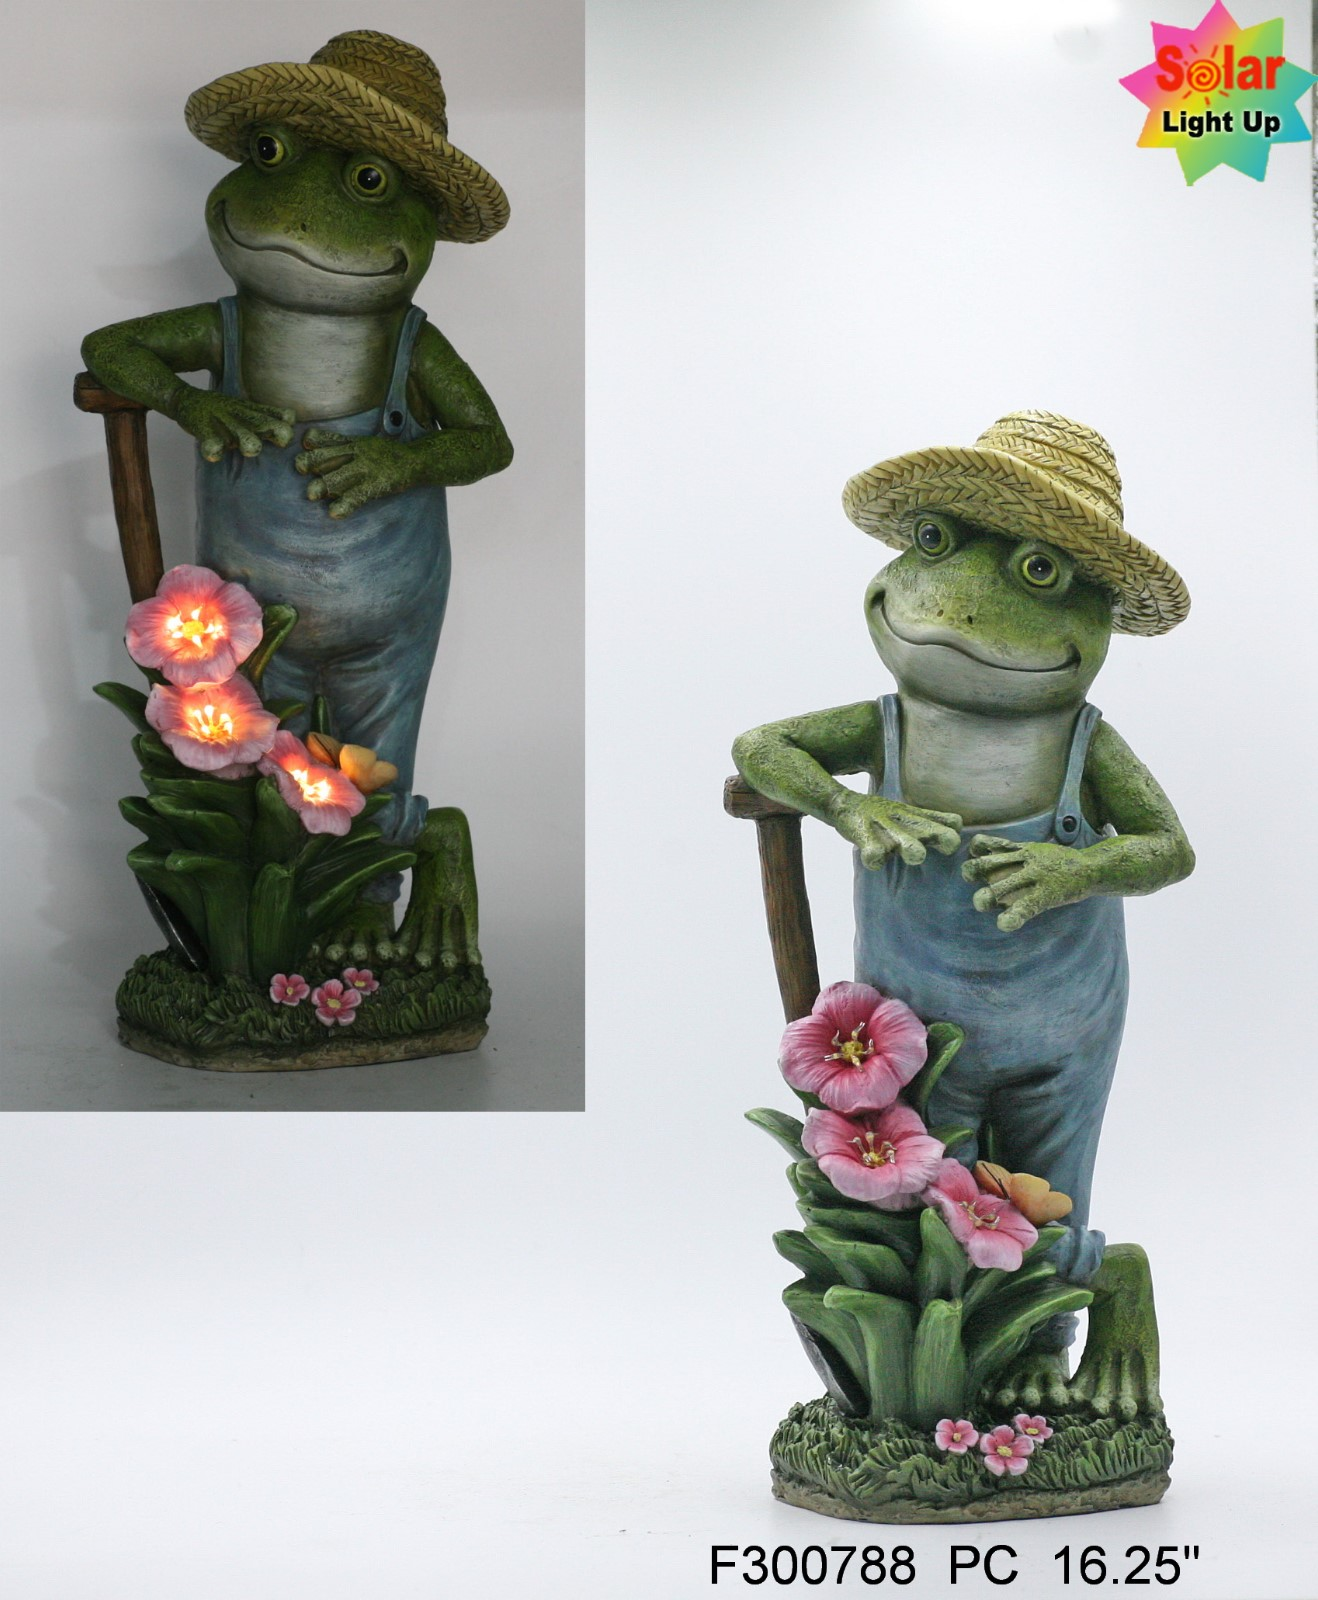 Resin a standing frog with pink flower with solar light